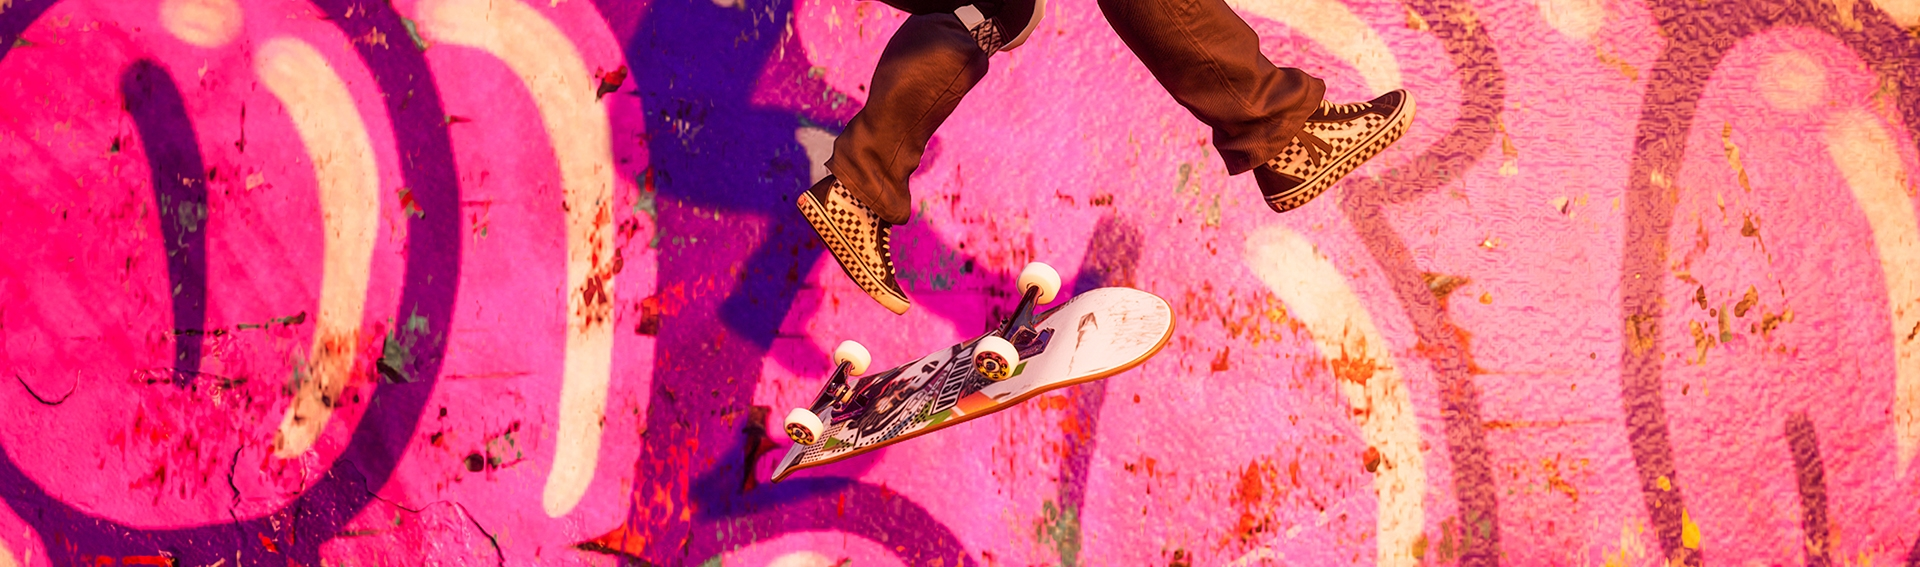 Tony Hawk's Pro Skater 1+2 – What Features are Included in the PS5 Upgrade?